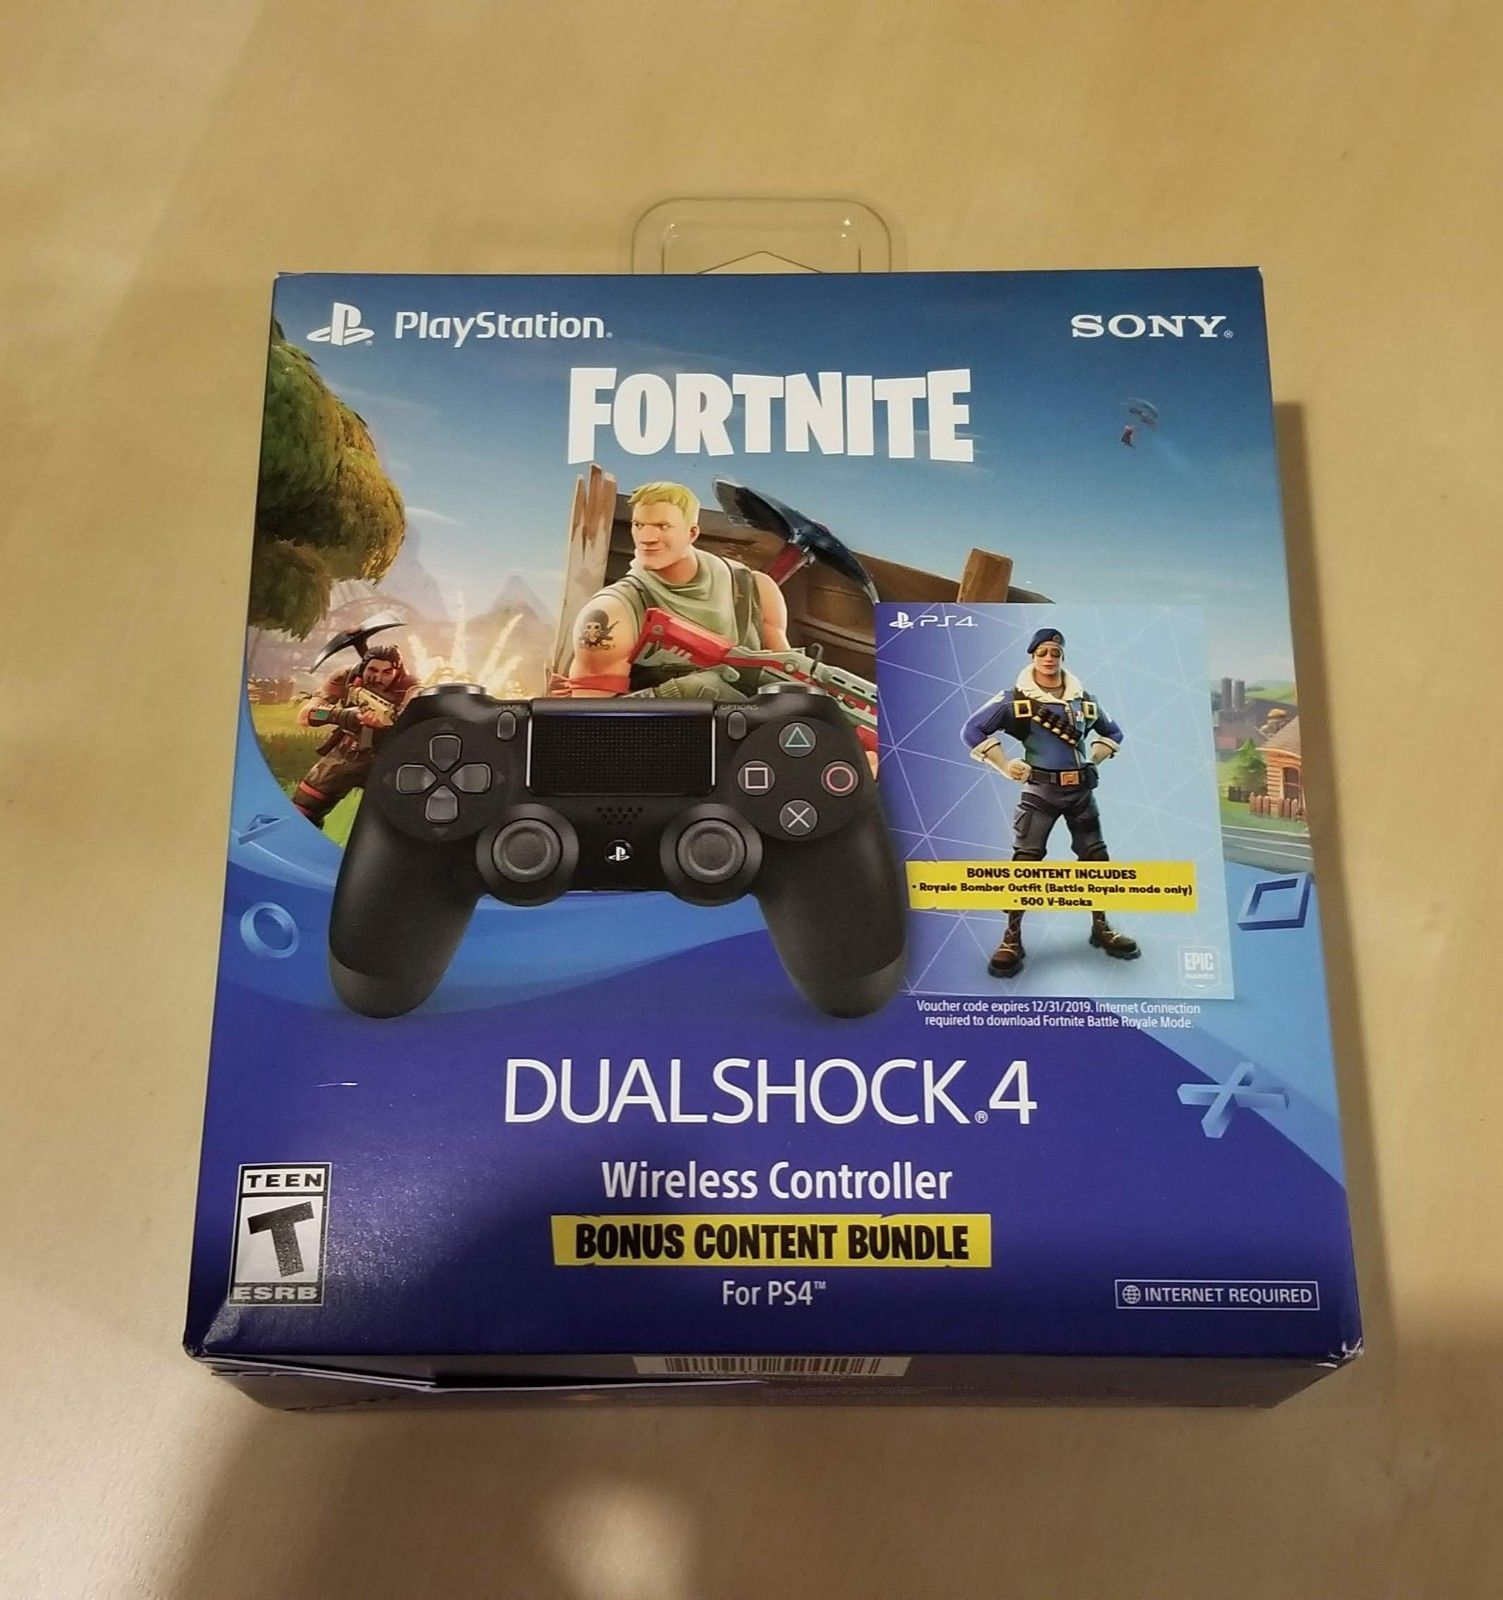 Ps4 Fortnite Royale Bomber Skin 500 V Bucks Dualshock 4 Controller